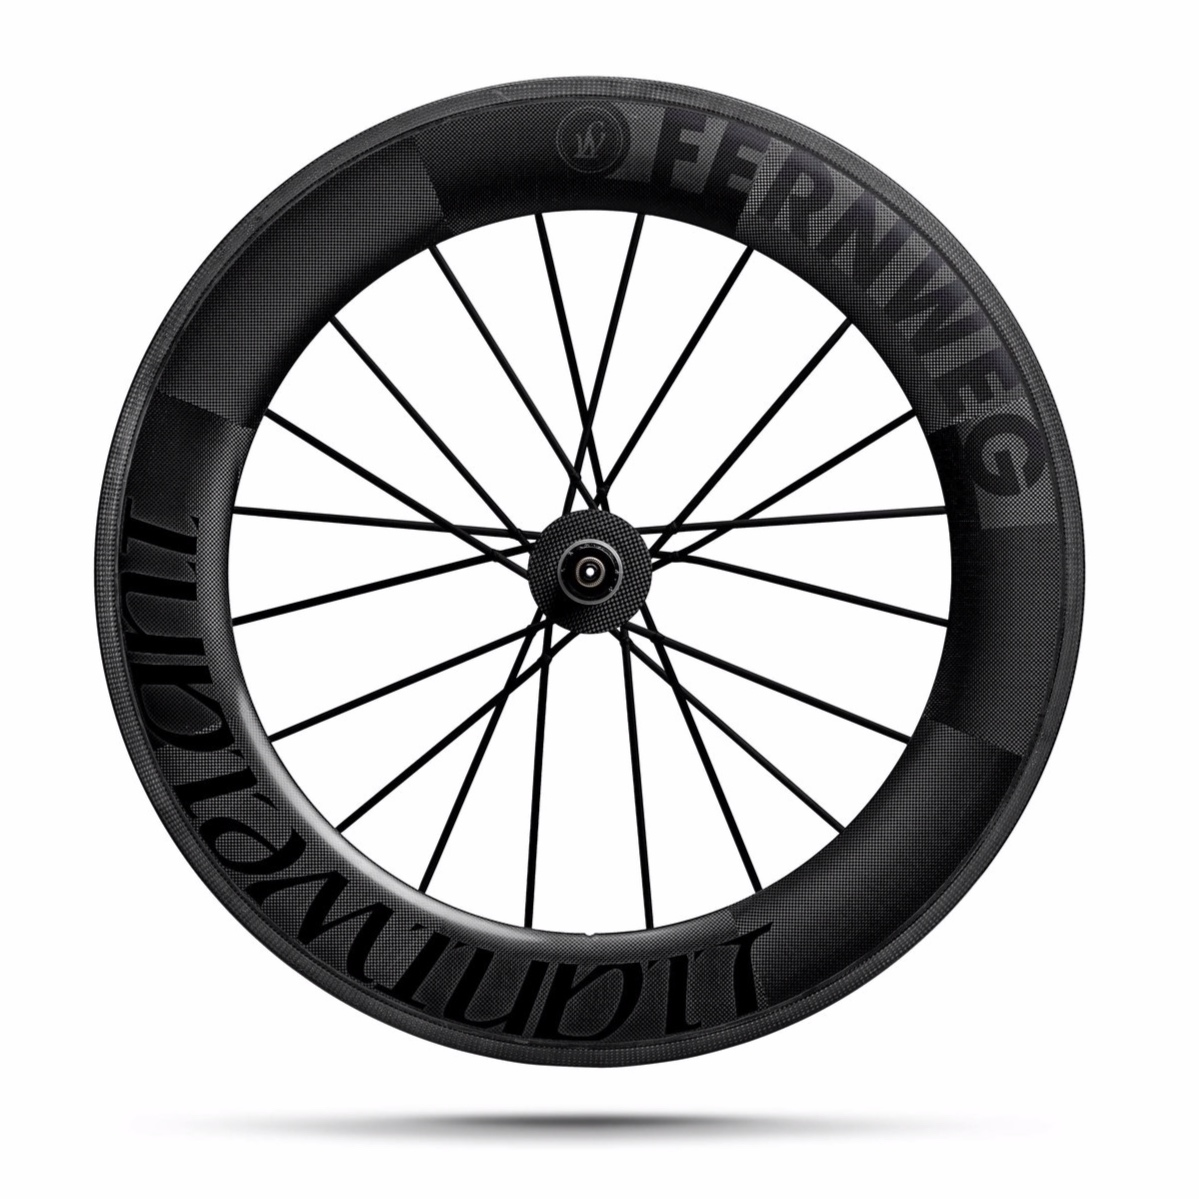 FERNWEG - The new FERNWEG with a 85 mm rim height leaves every competition behind.